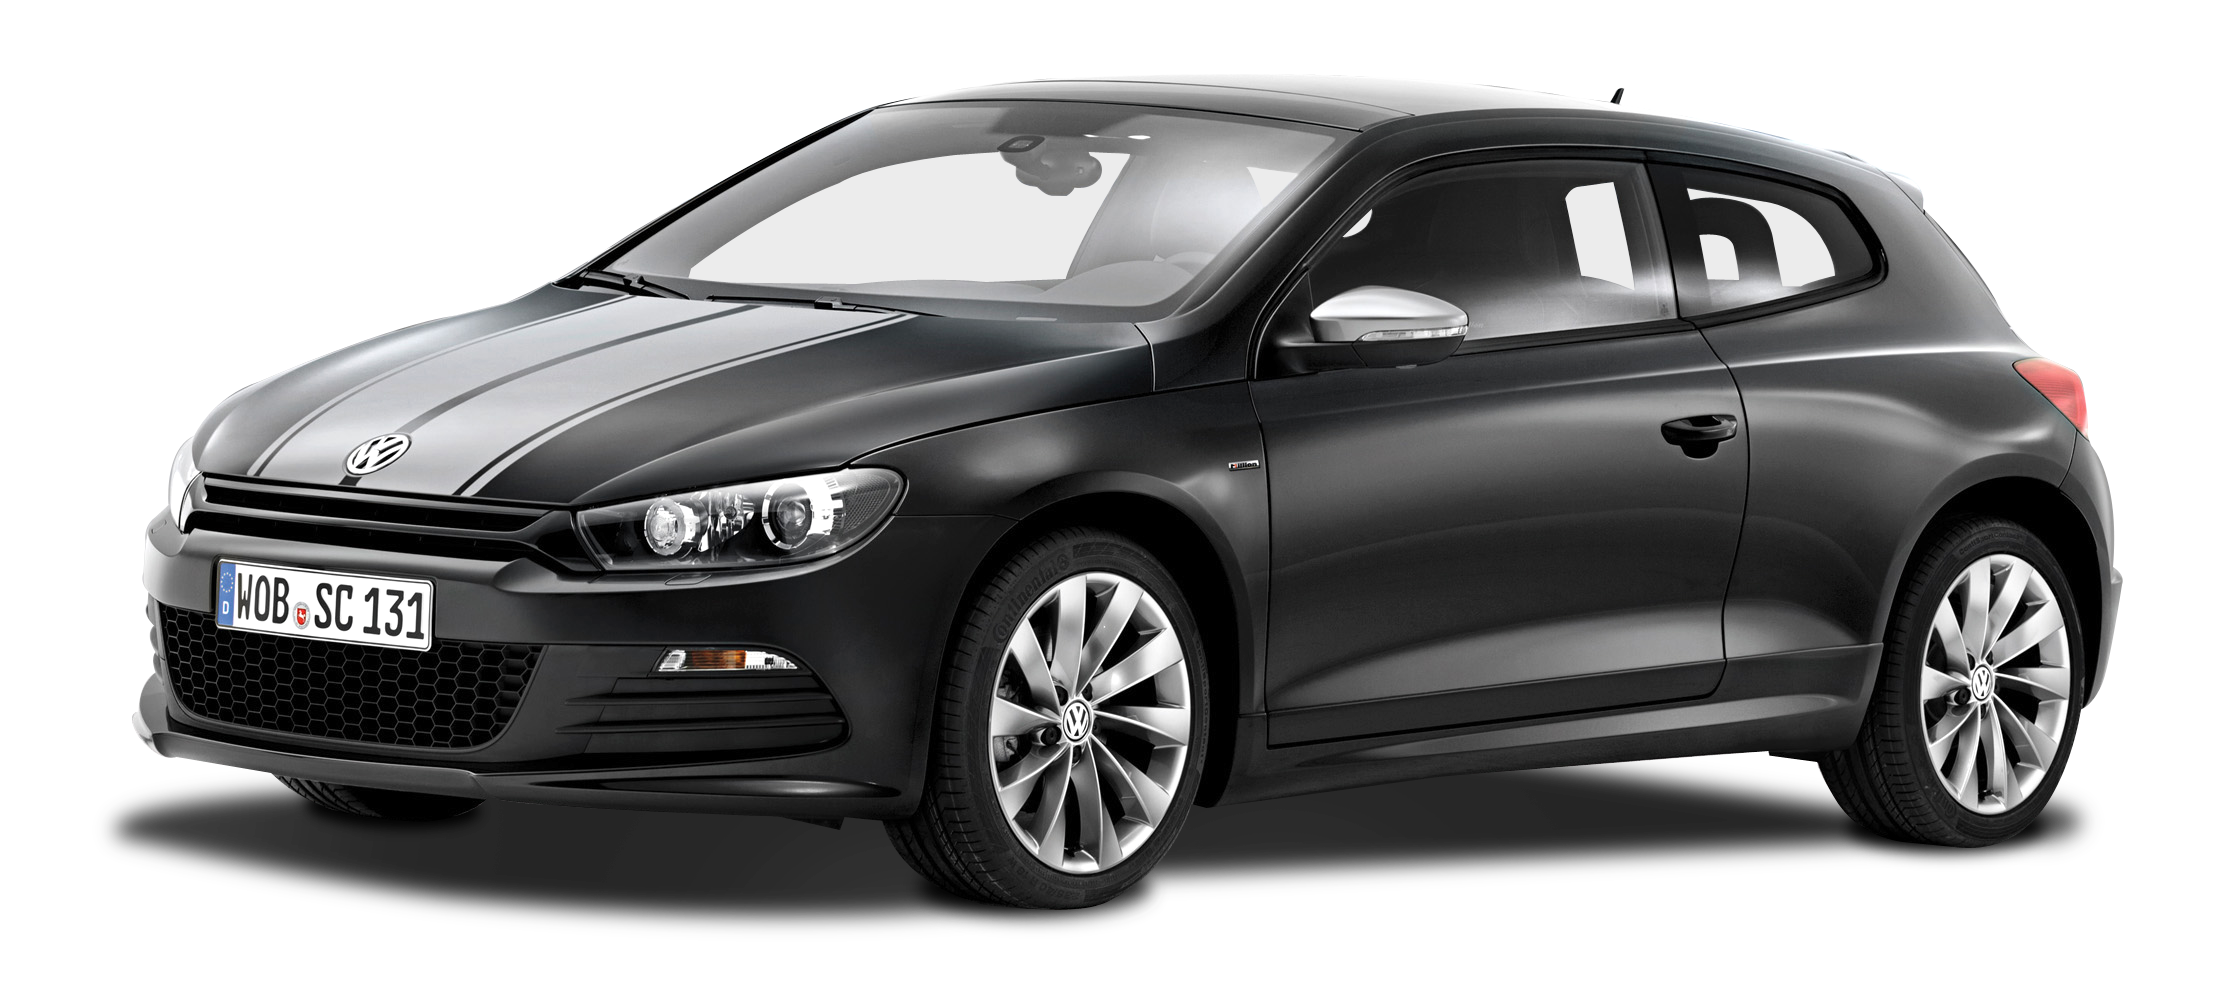 Volkswagen Scirocco Million Edition Car